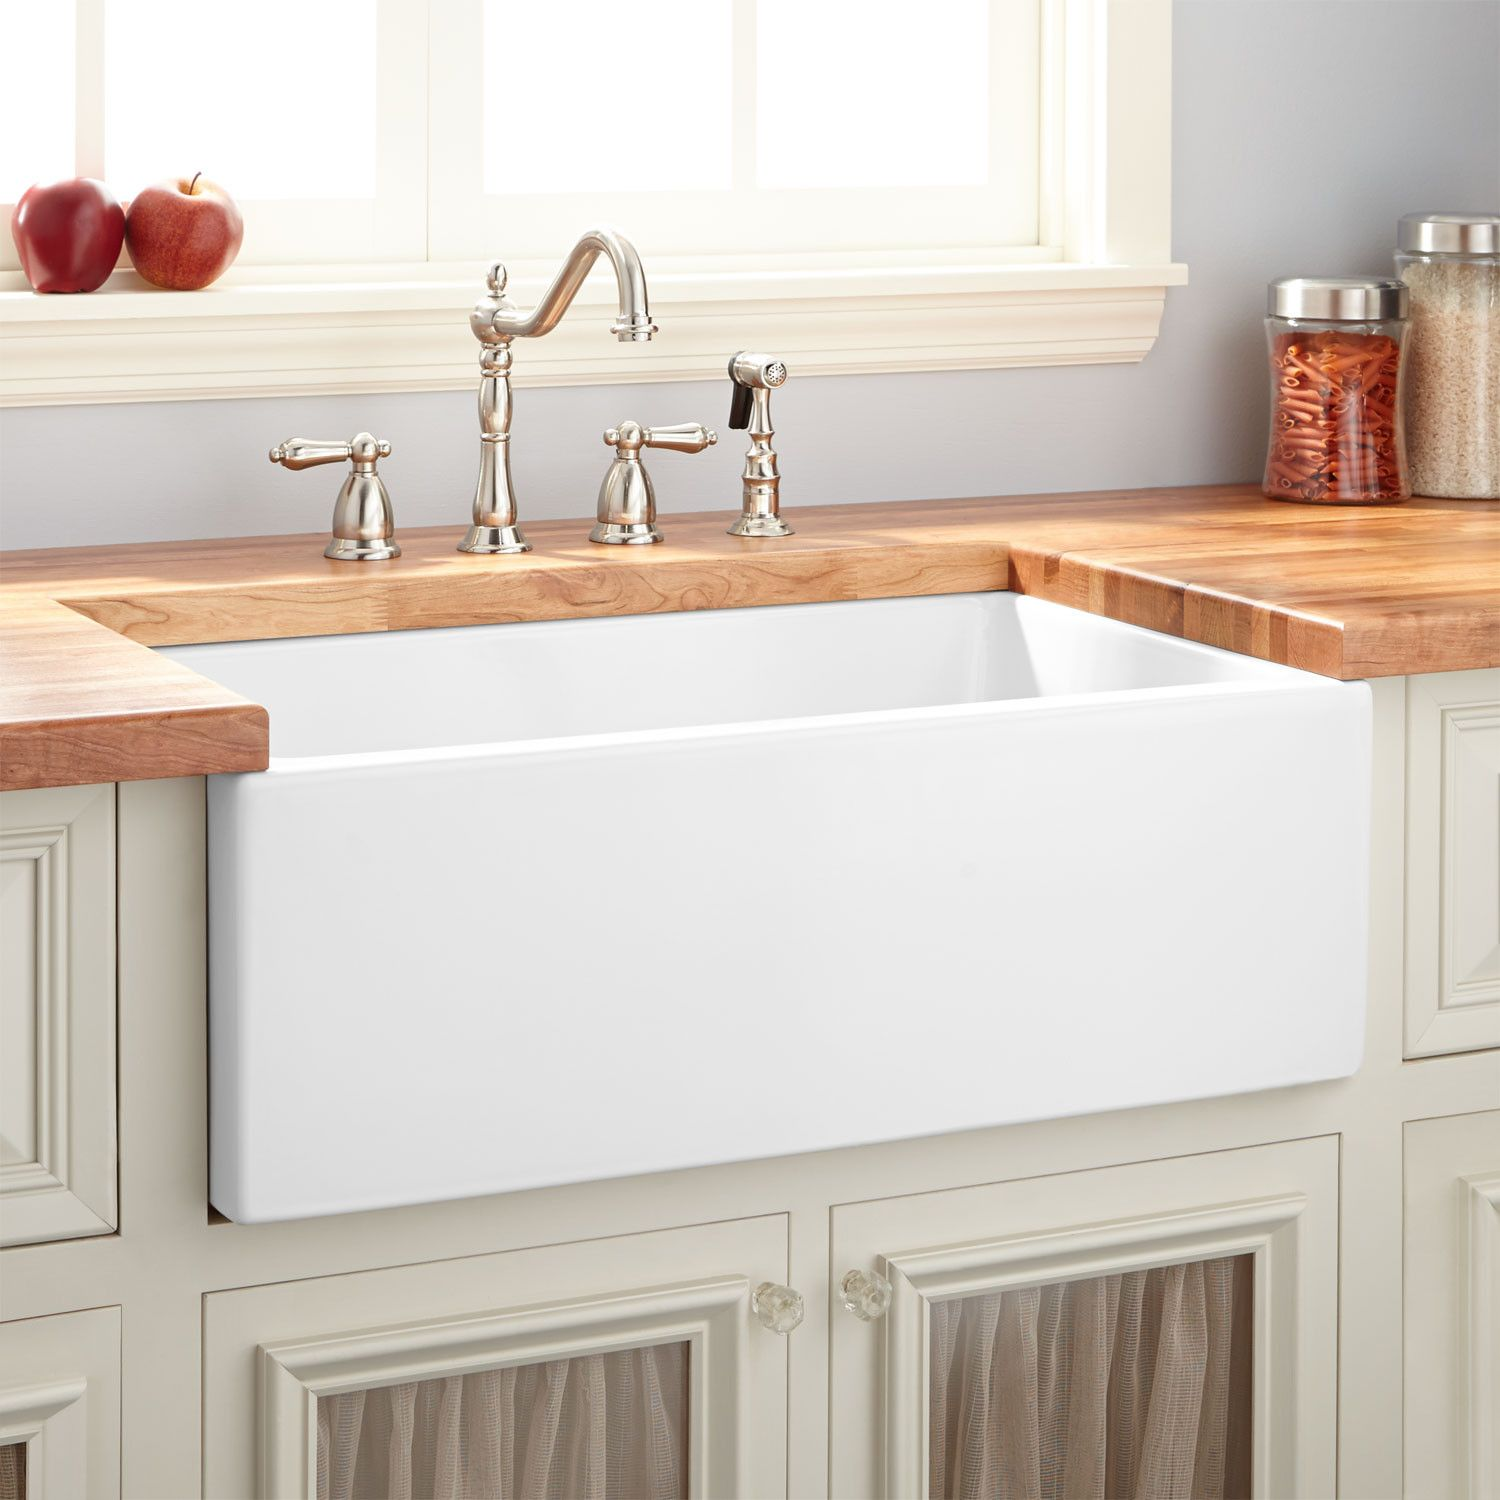 30 mitzy lightweight fireclay reversible farmhouse sink smooth apron white kitchen sink 30 Mitzy Fireclay Lightweight Rerversible Farmhouse Sink Smooth Apron White